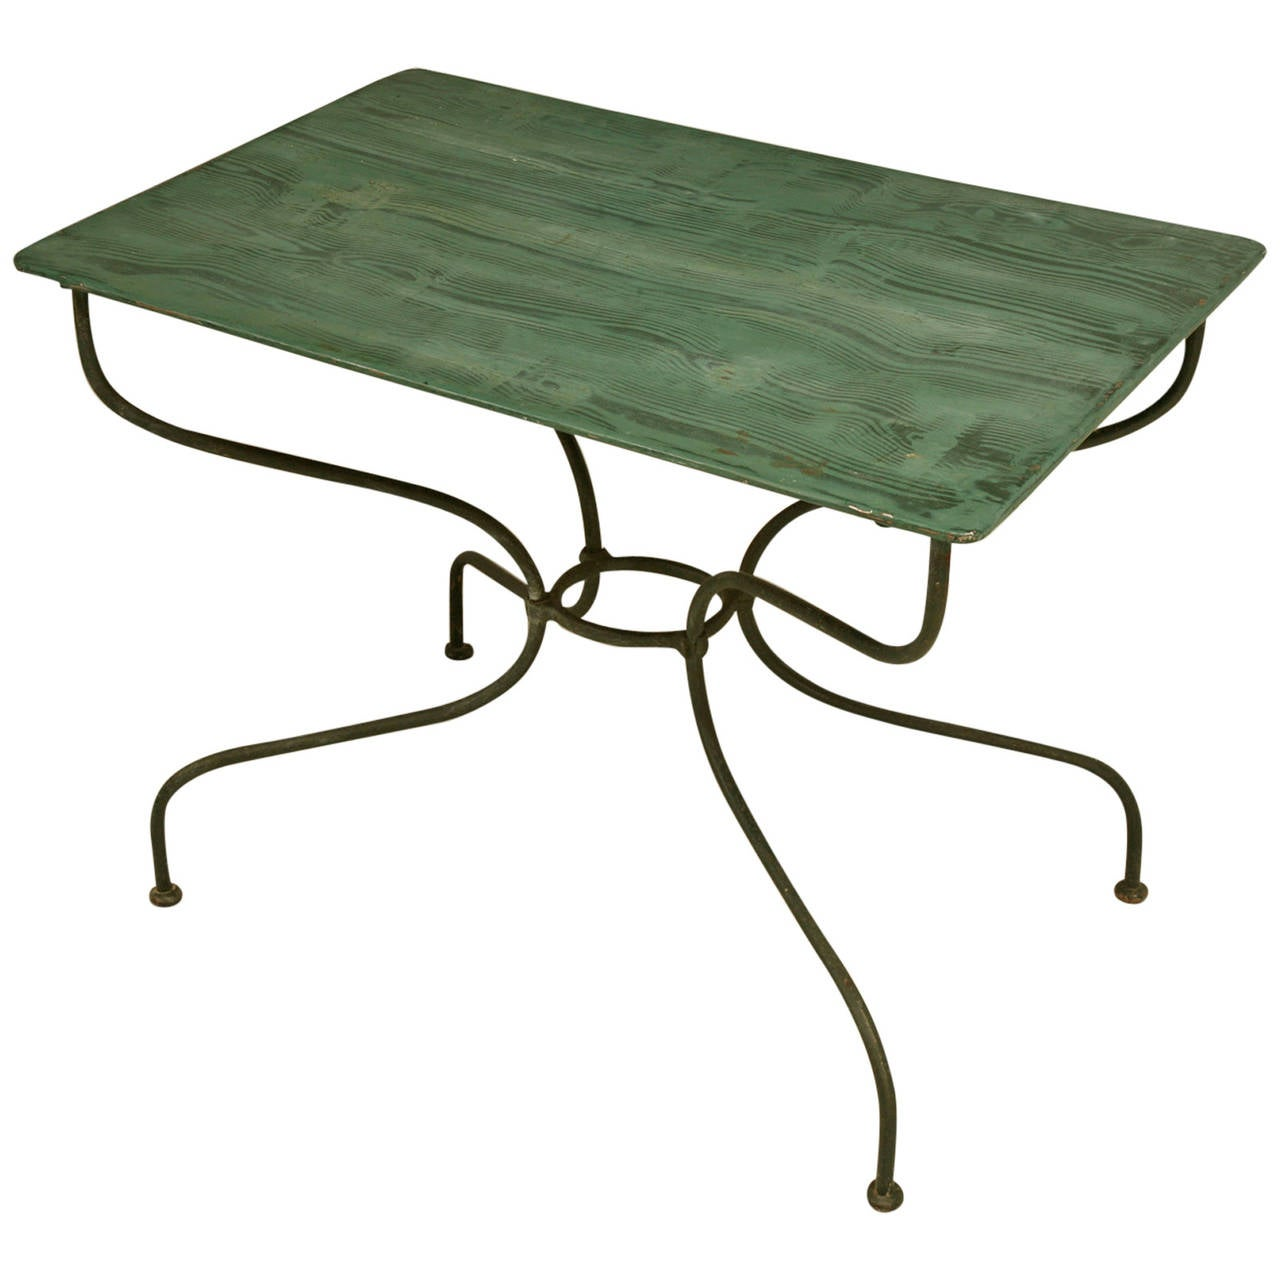 green french bistro chairs alera office vintage garden or kitchen metal table at 1stdibs